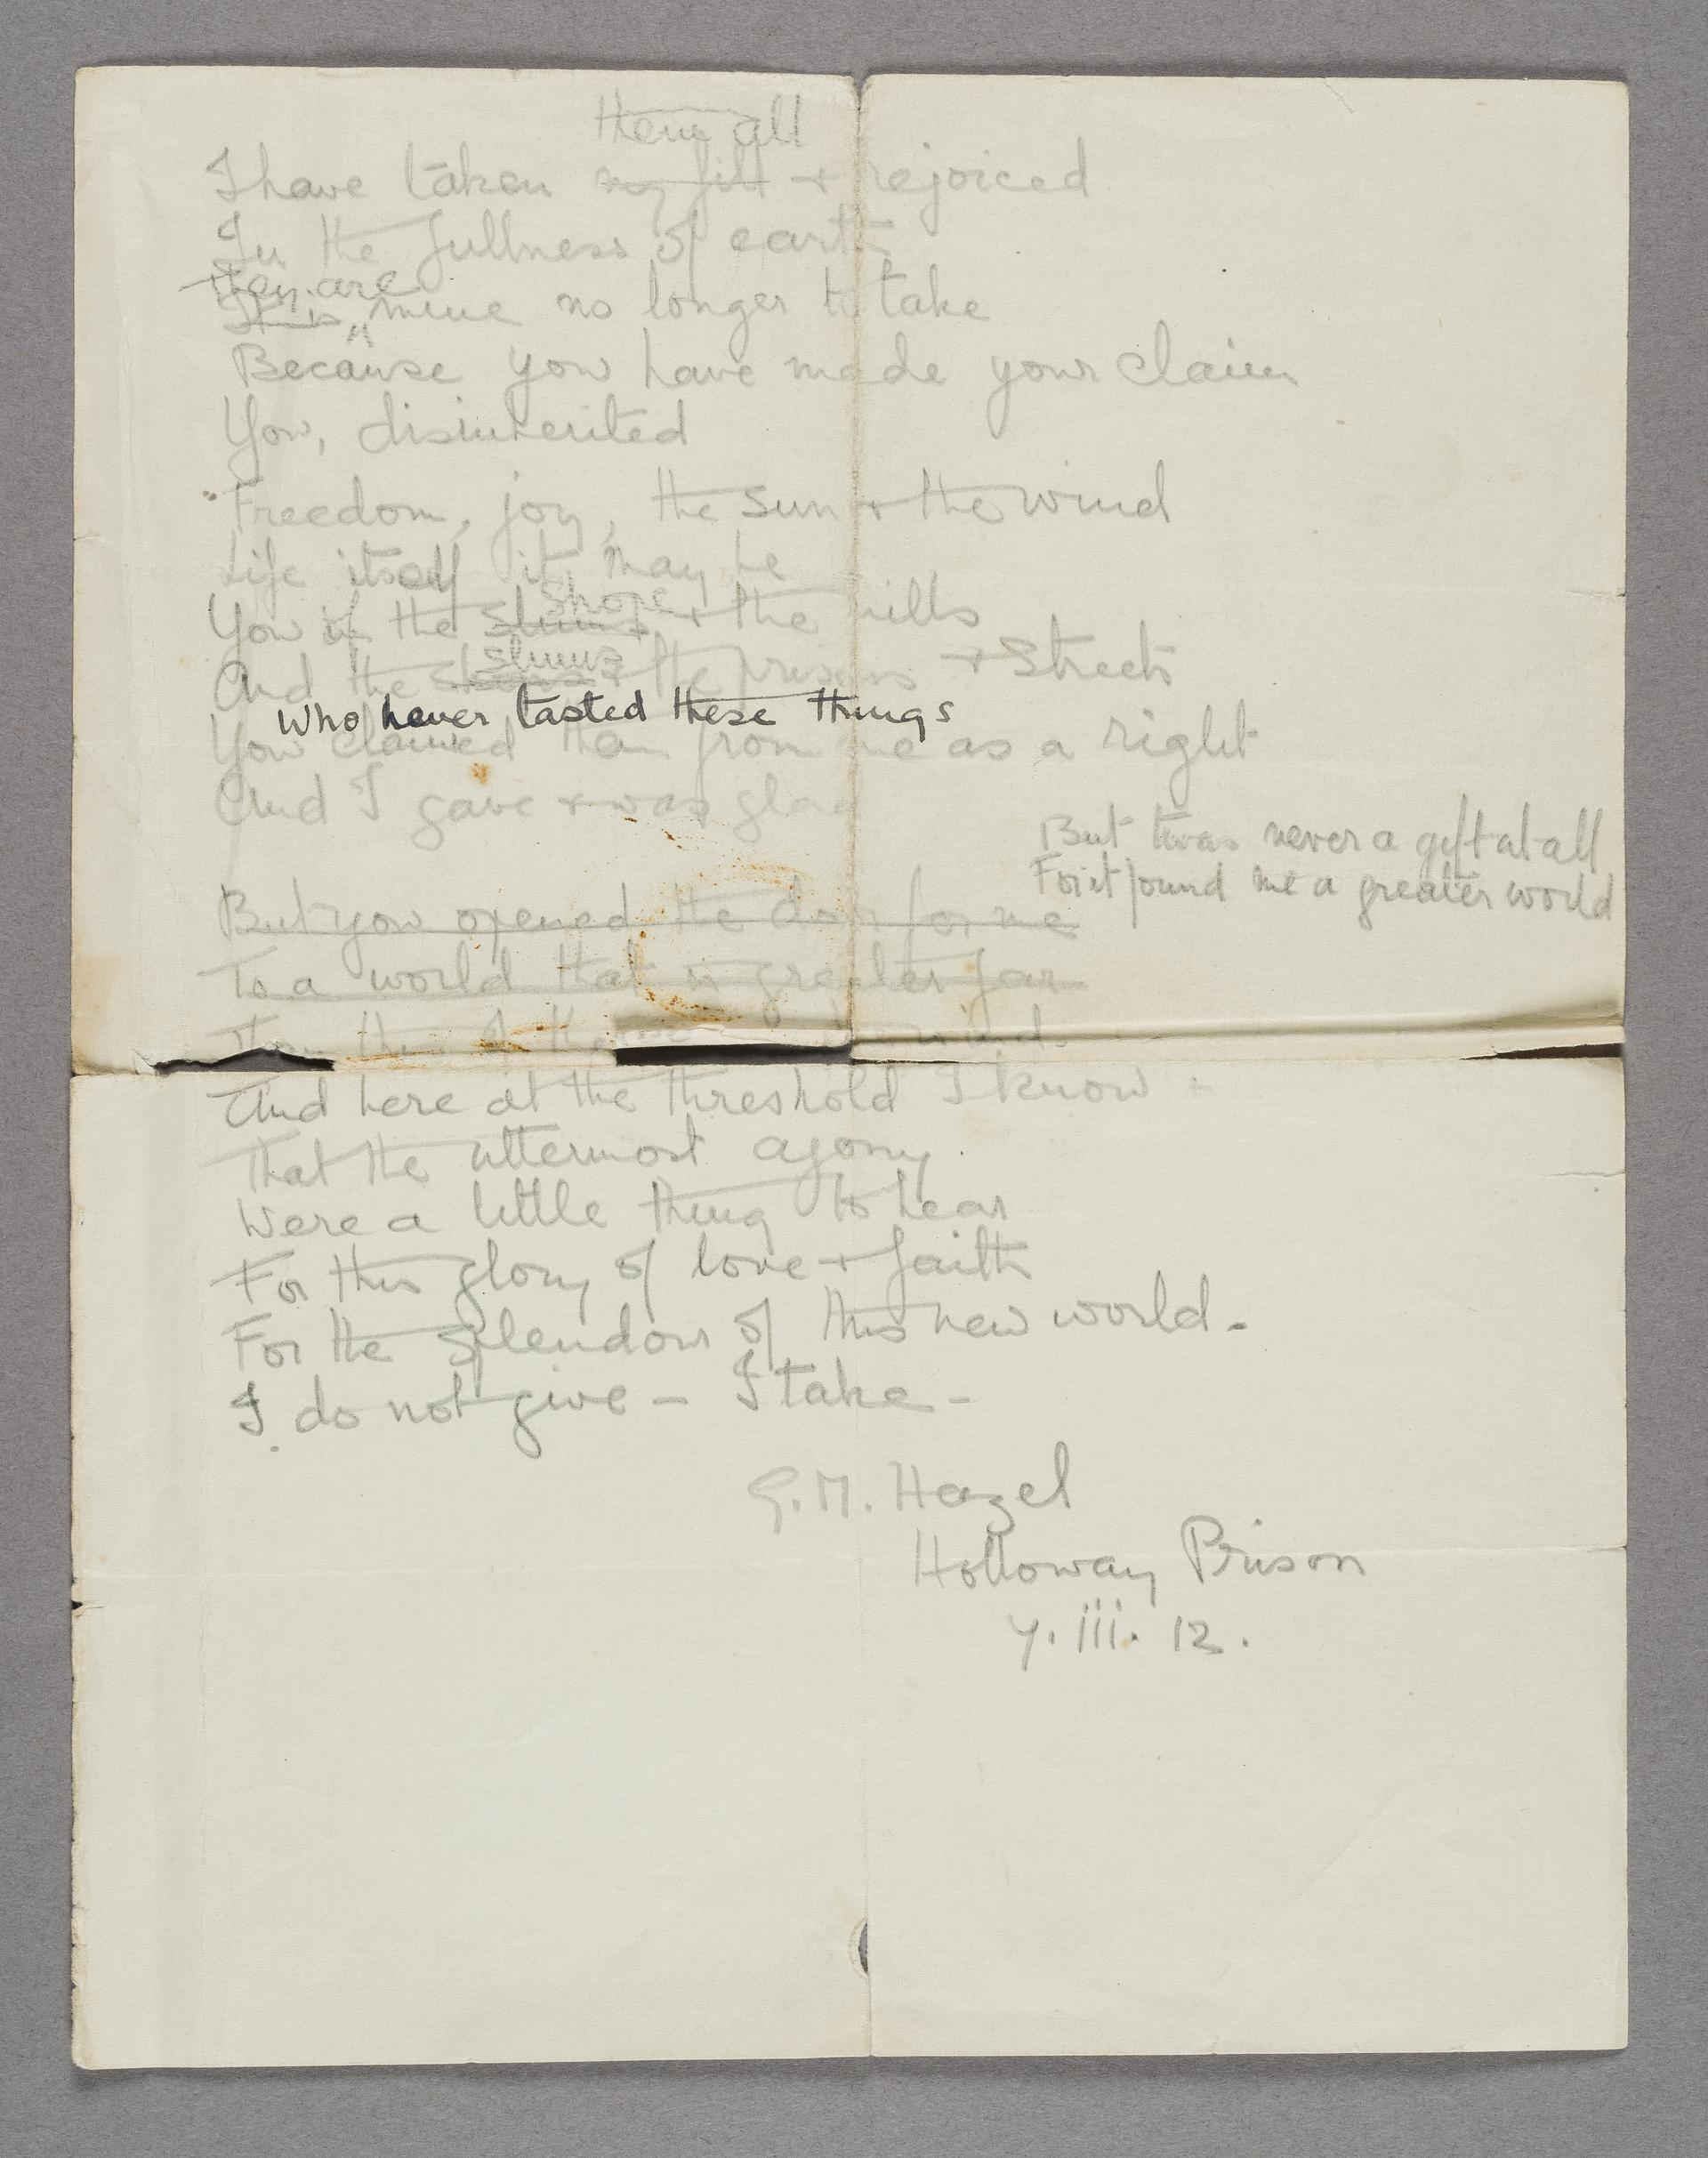 Sheet of handwritten poetry by a suffragette, G.M. Hazel, in Holloway Prison. Dated 7th March 1912